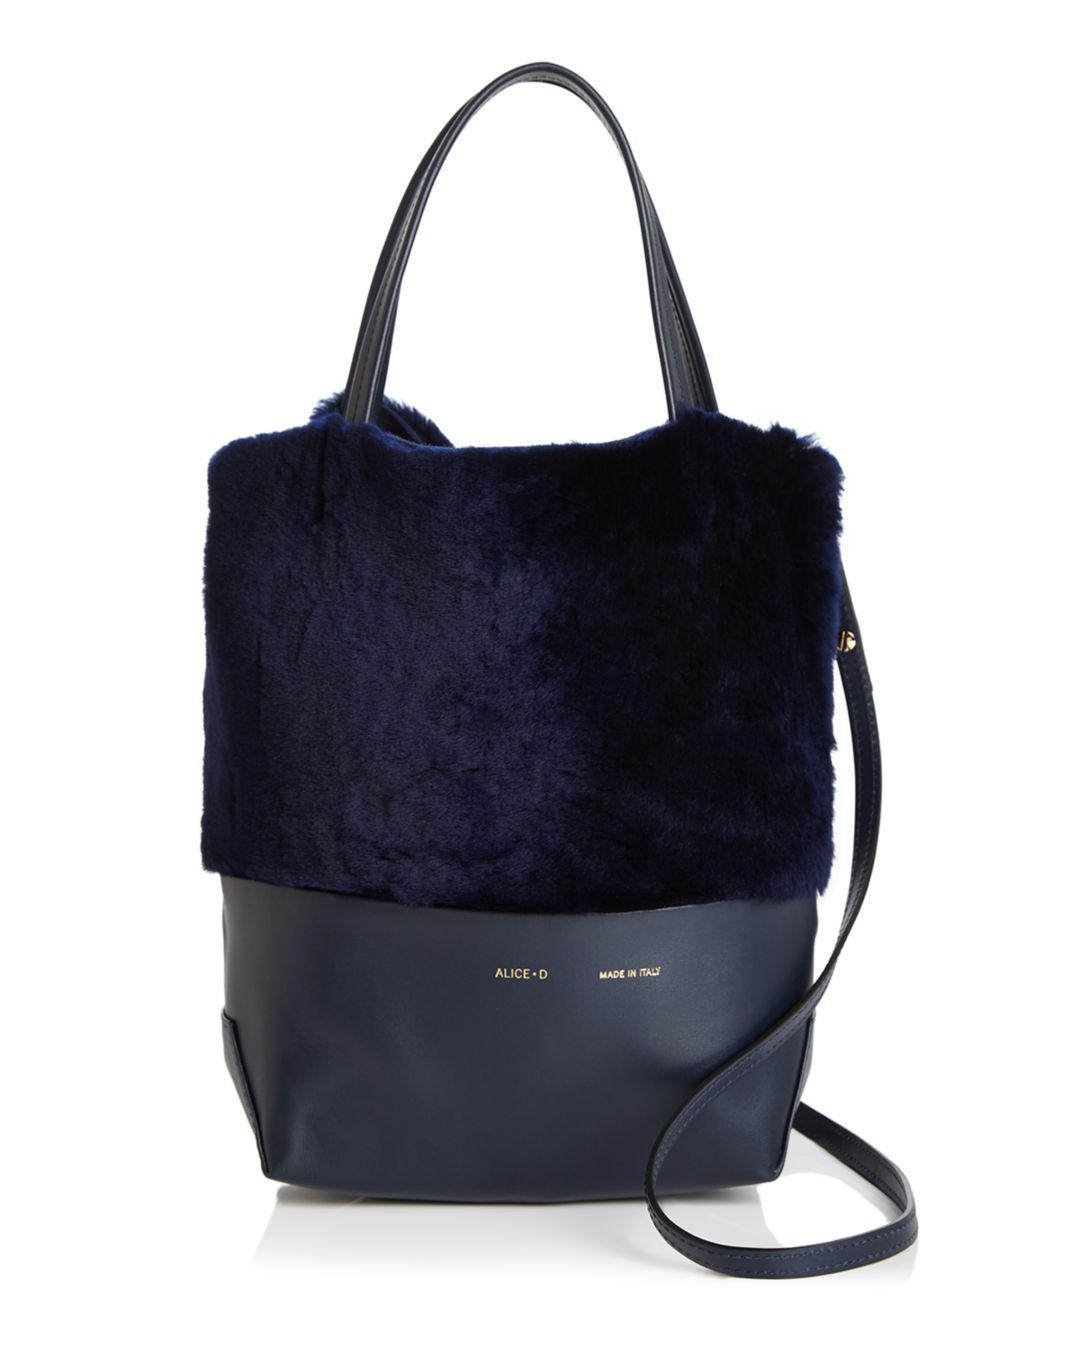 dac866dbc3 D - Blue Small Leather   Shearling Tote - Lyst. View fullscreen